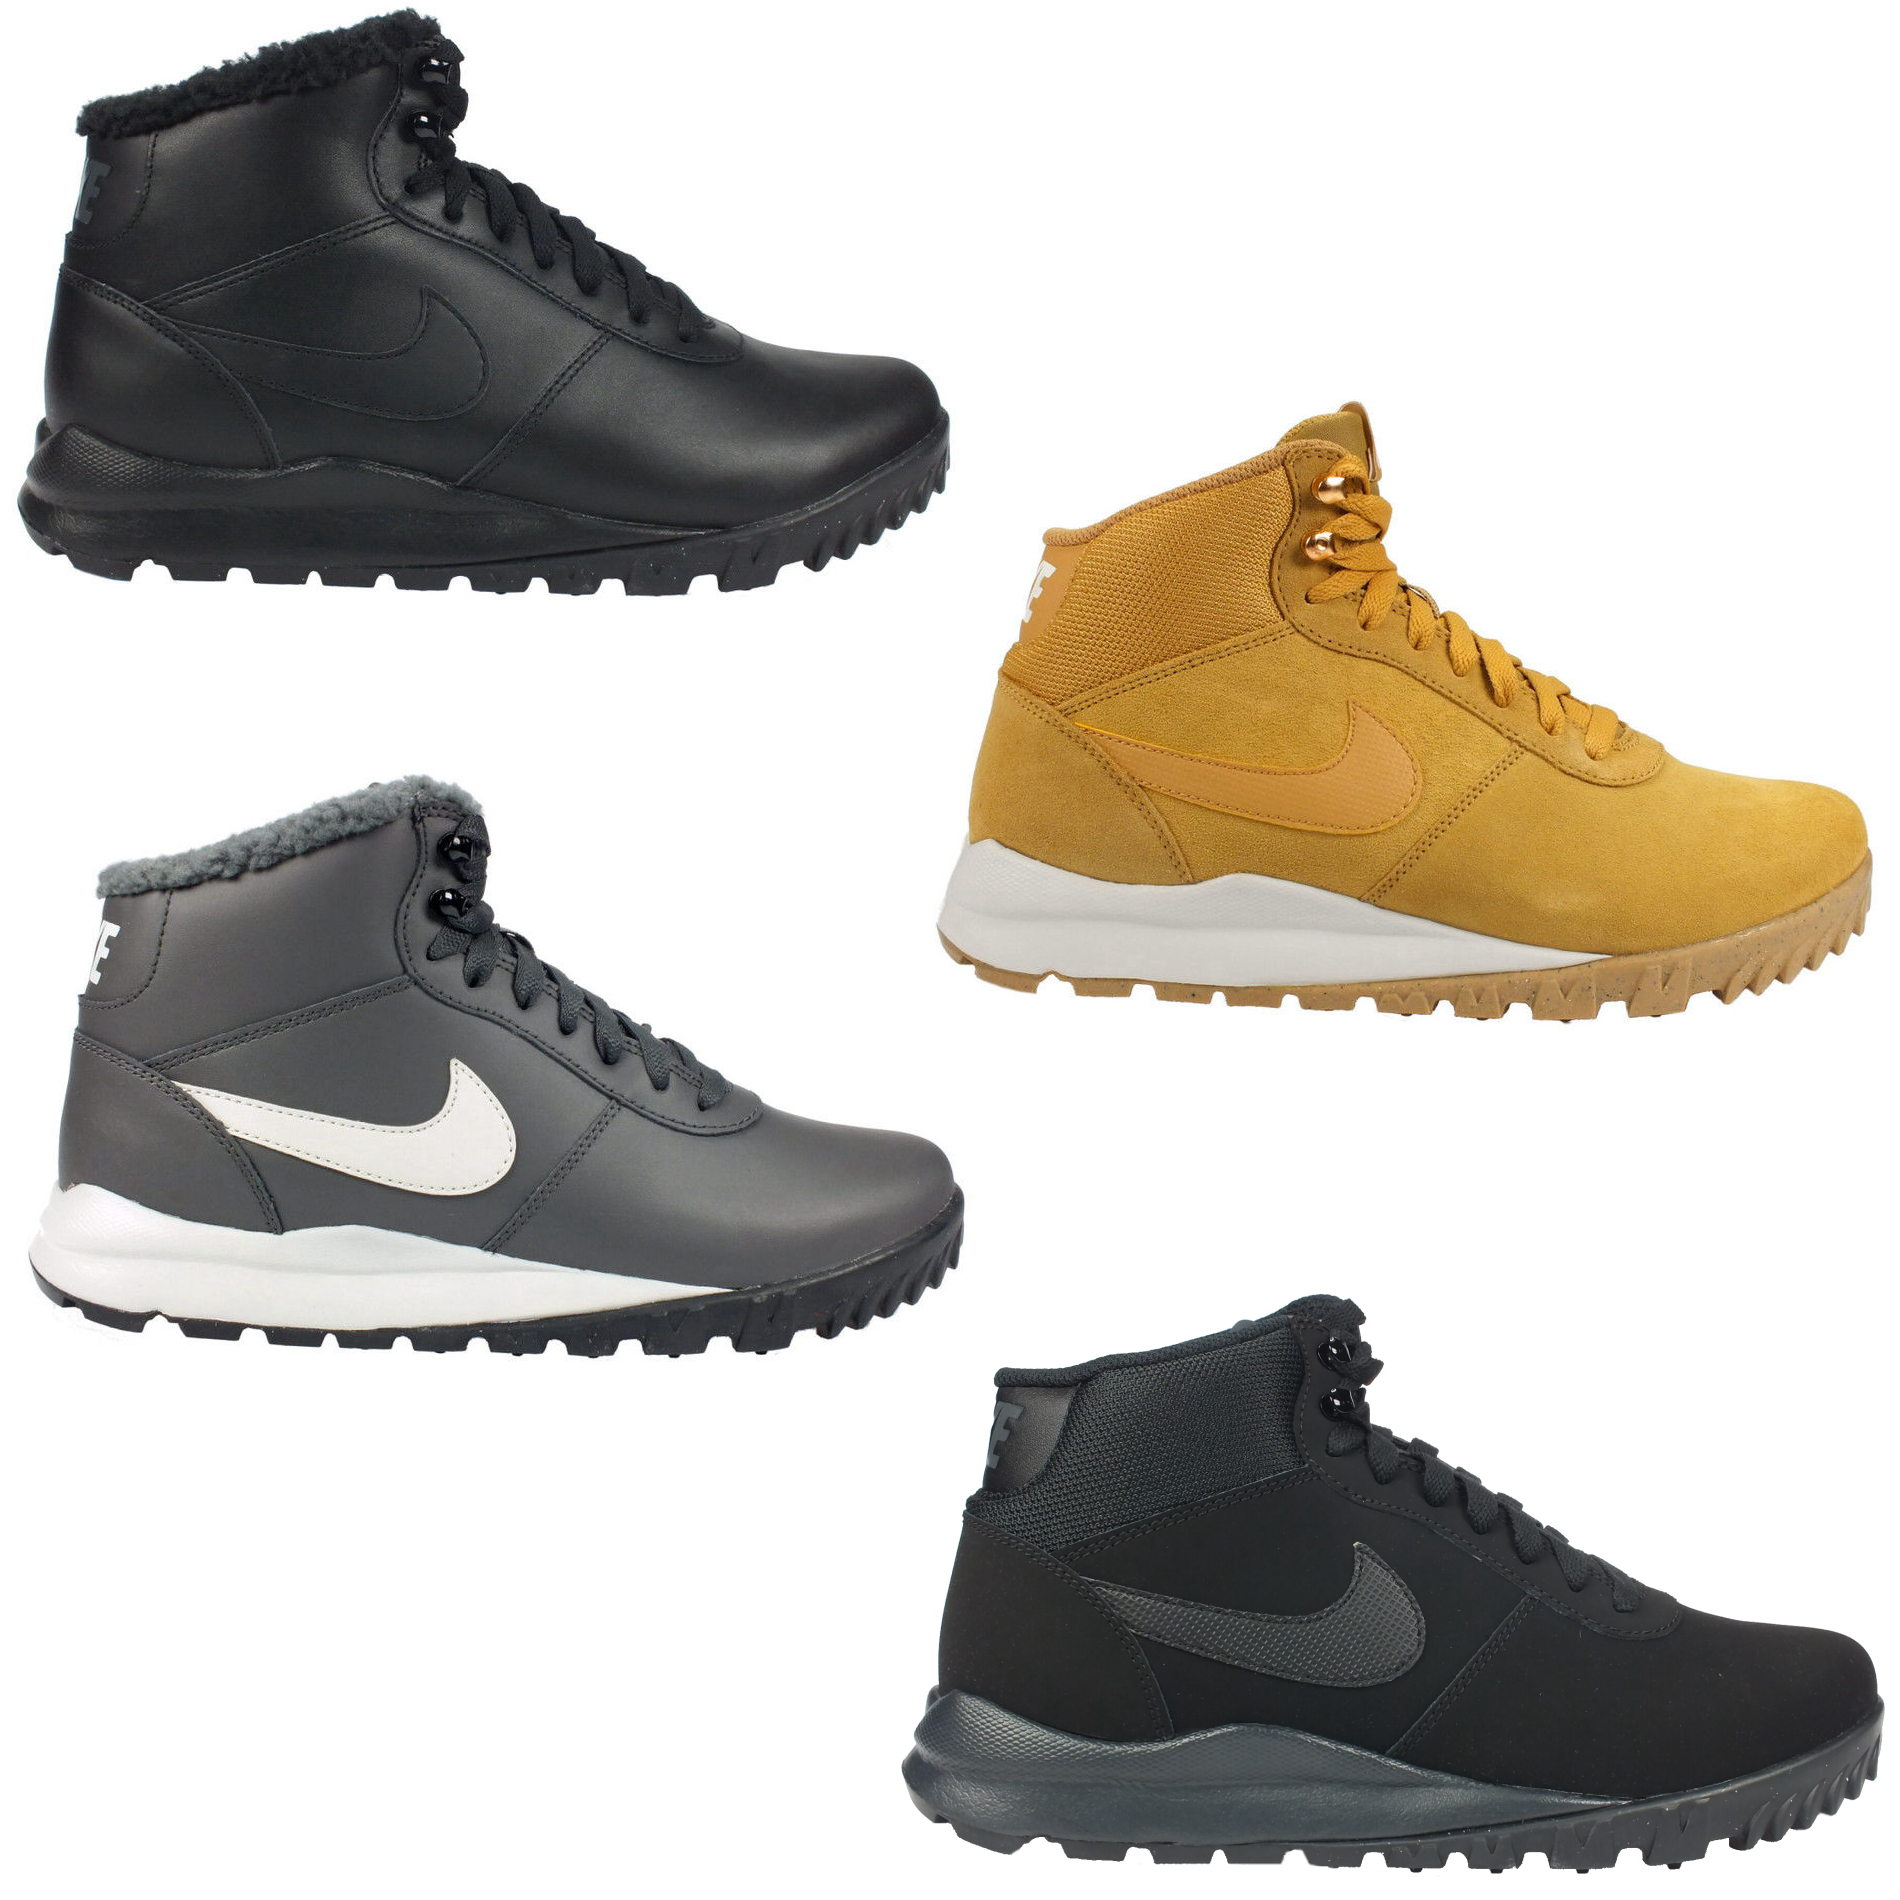 nike hoodland schuhe boots winterschuhe winterstiefel. Black Bedroom Furniture Sets. Home Design Ideas